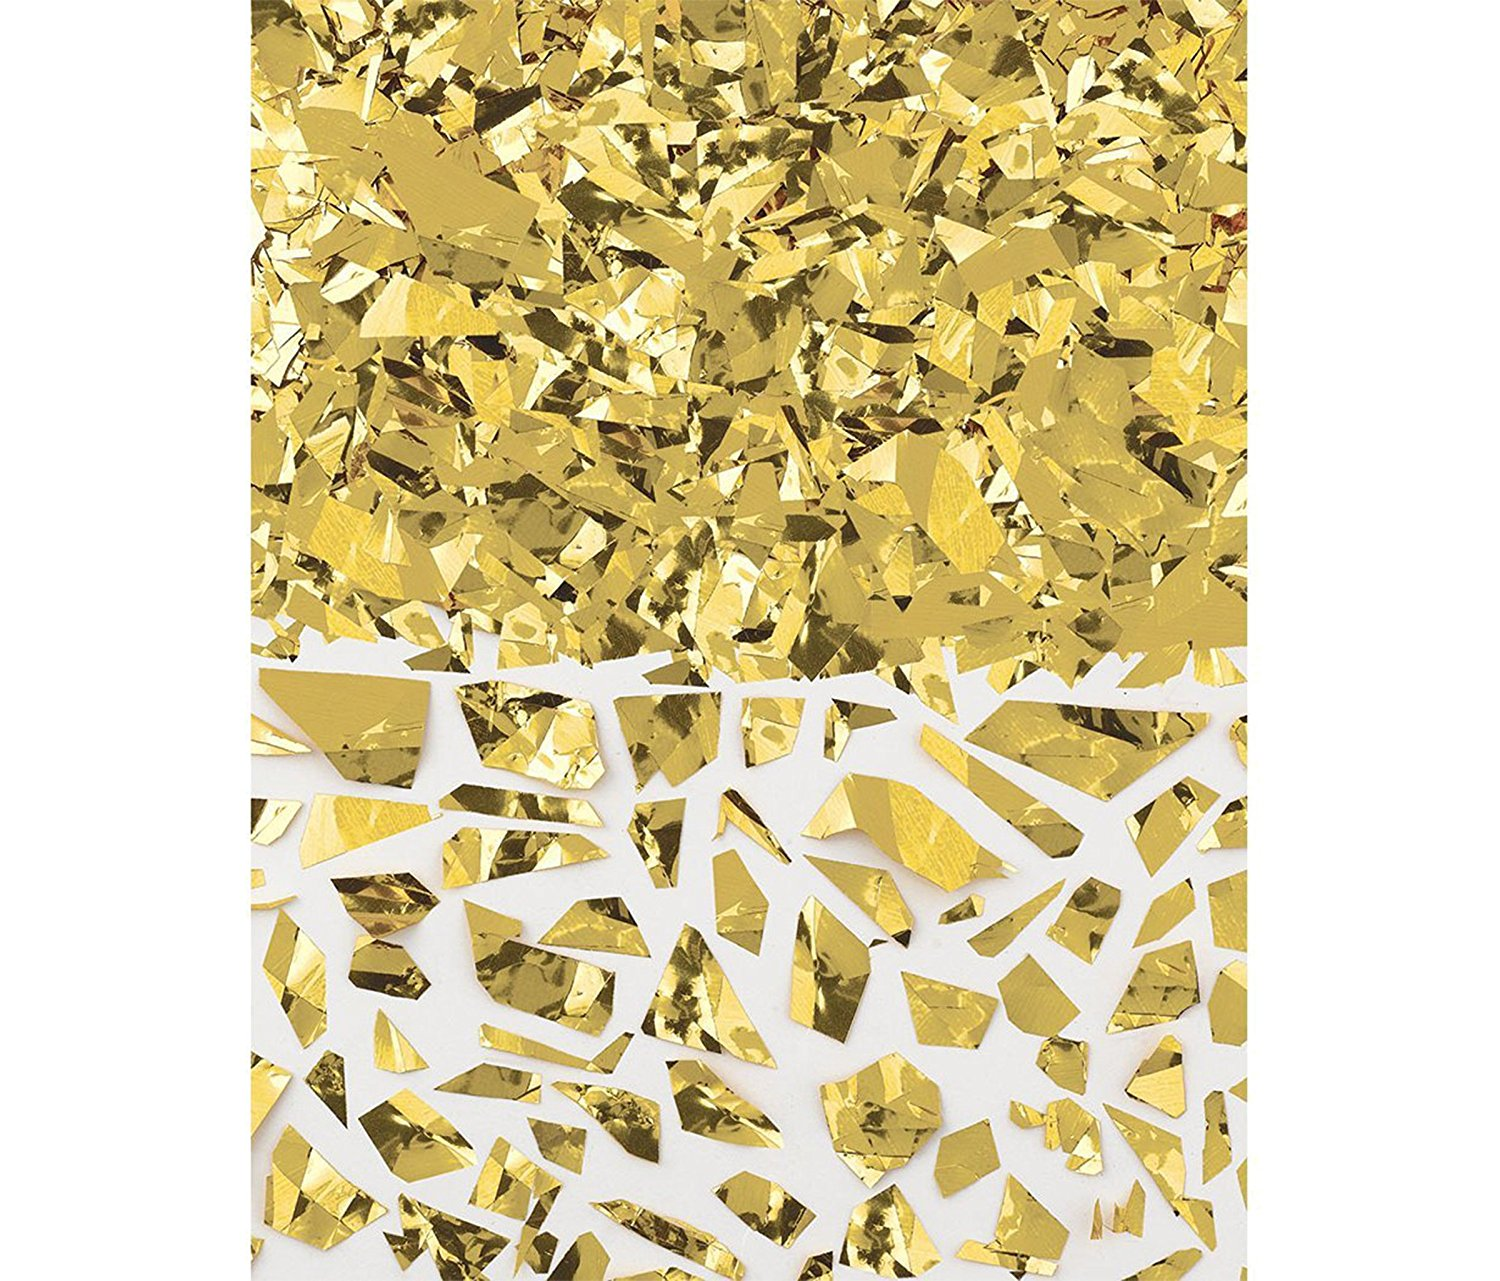 Mozlly Multipack - Amscan Gold Sparkle Foil Shred - 1.5oz - For Invitations, Table Decoration and More - Confetti, Sequins - Novelty Party Supplies (Pack of 3)